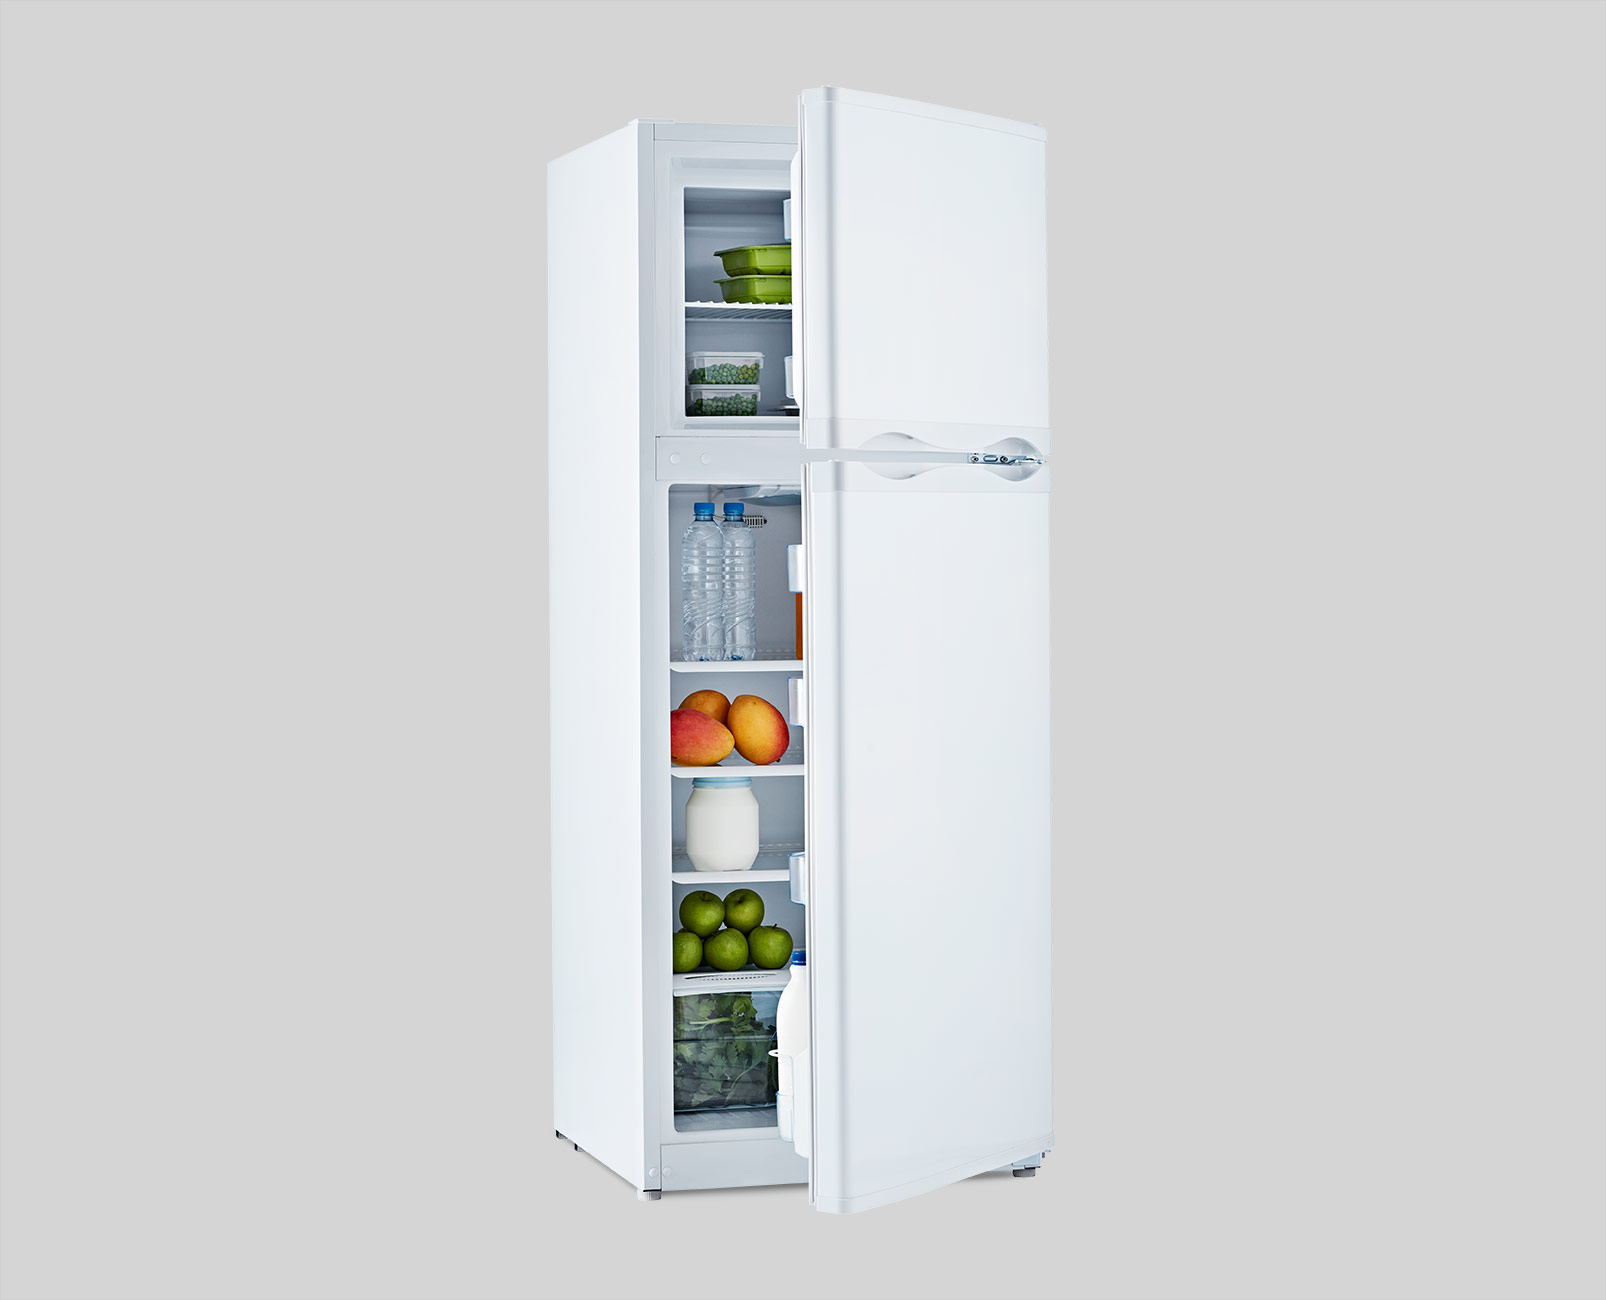 DC285L-W 285 Ltr 12V / 24V Fridge/Freezer